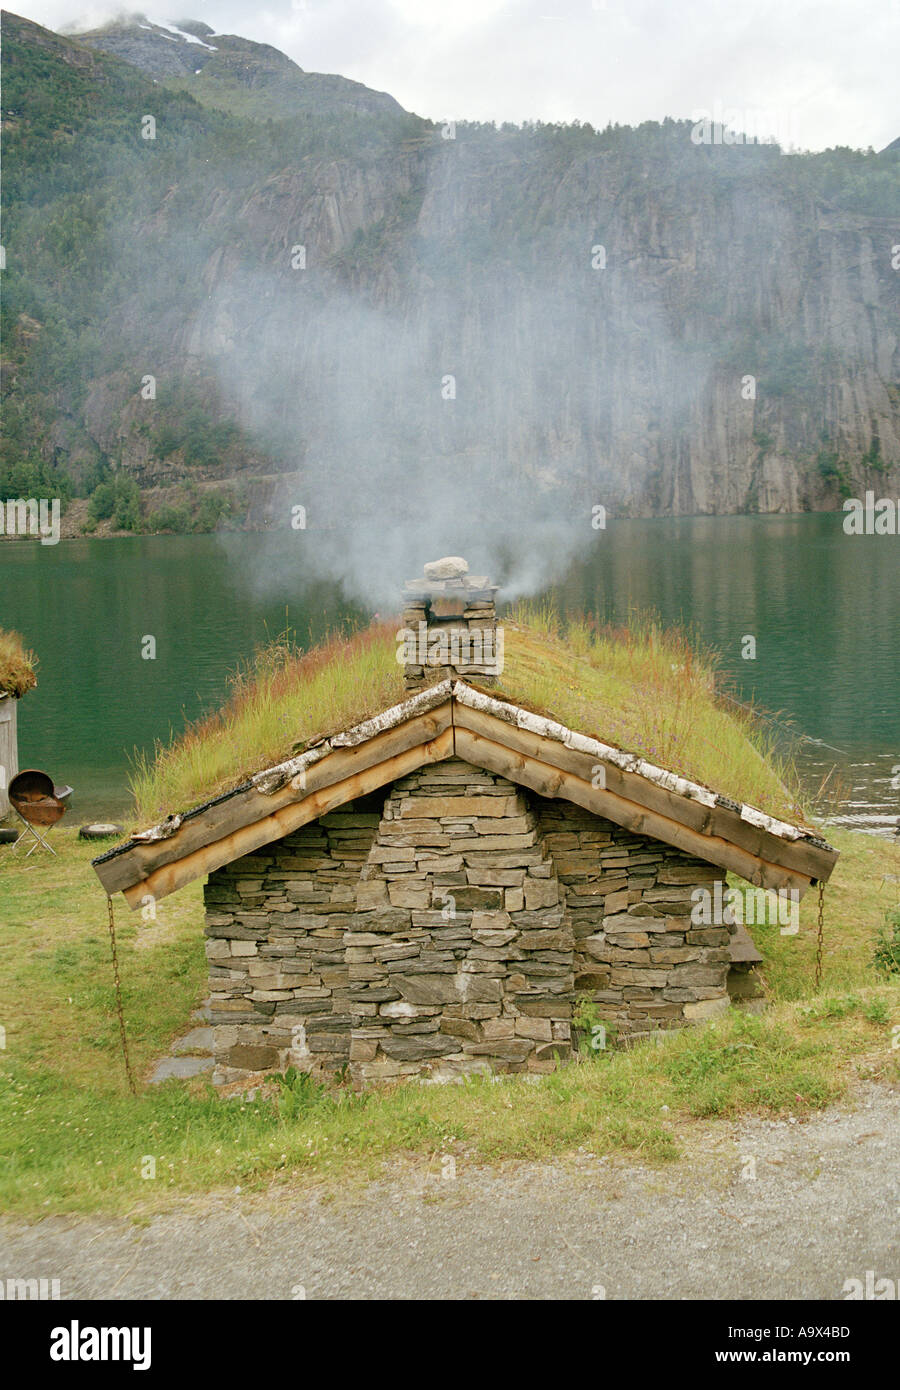 Hut with smoking chimney in Norwegian landscape - Stock Image